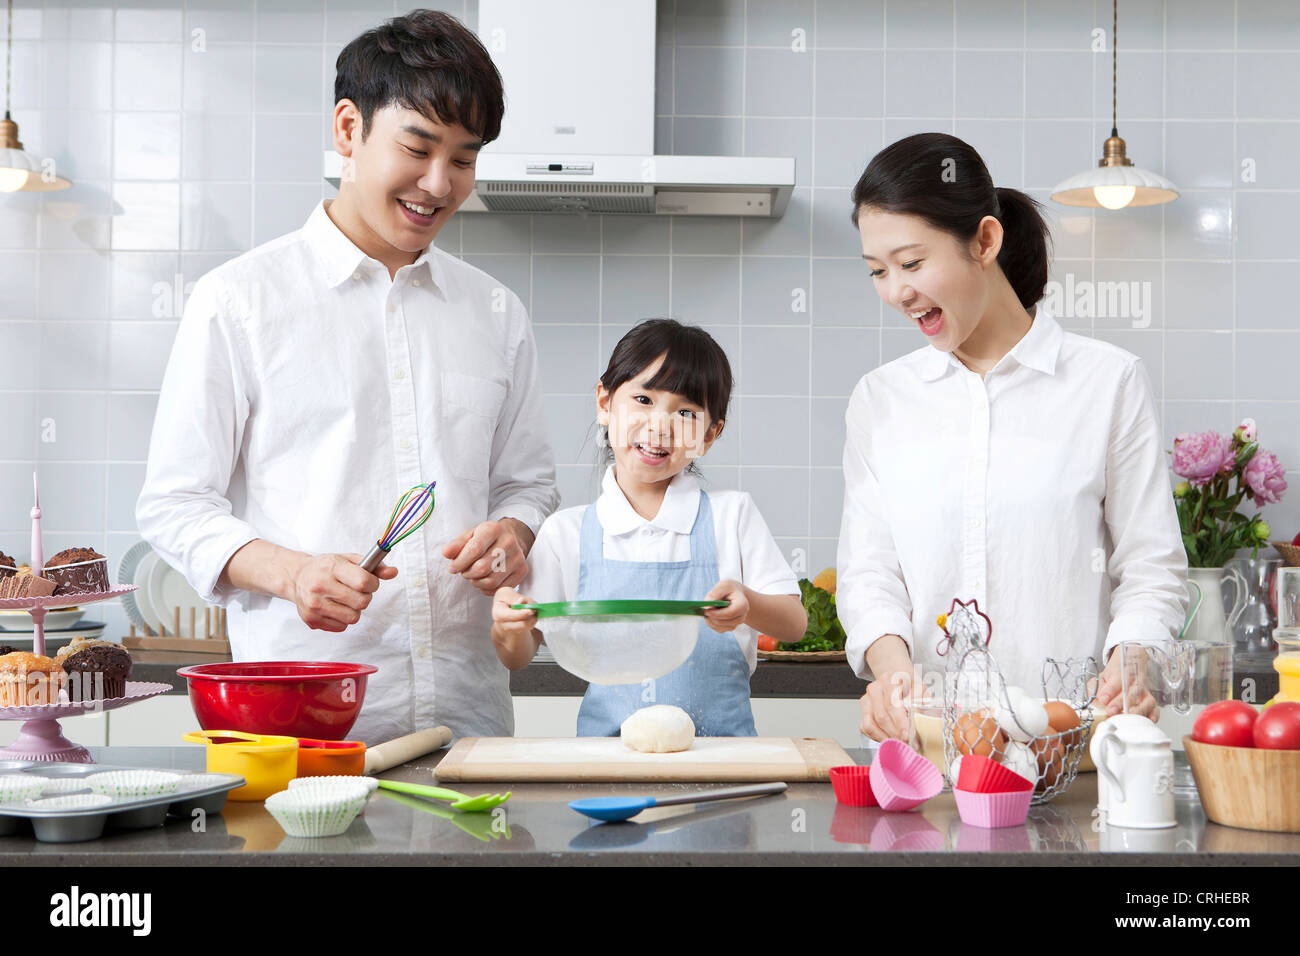 Happy family cooking in the kitchen Stock Photo: 48942315 - Alamy